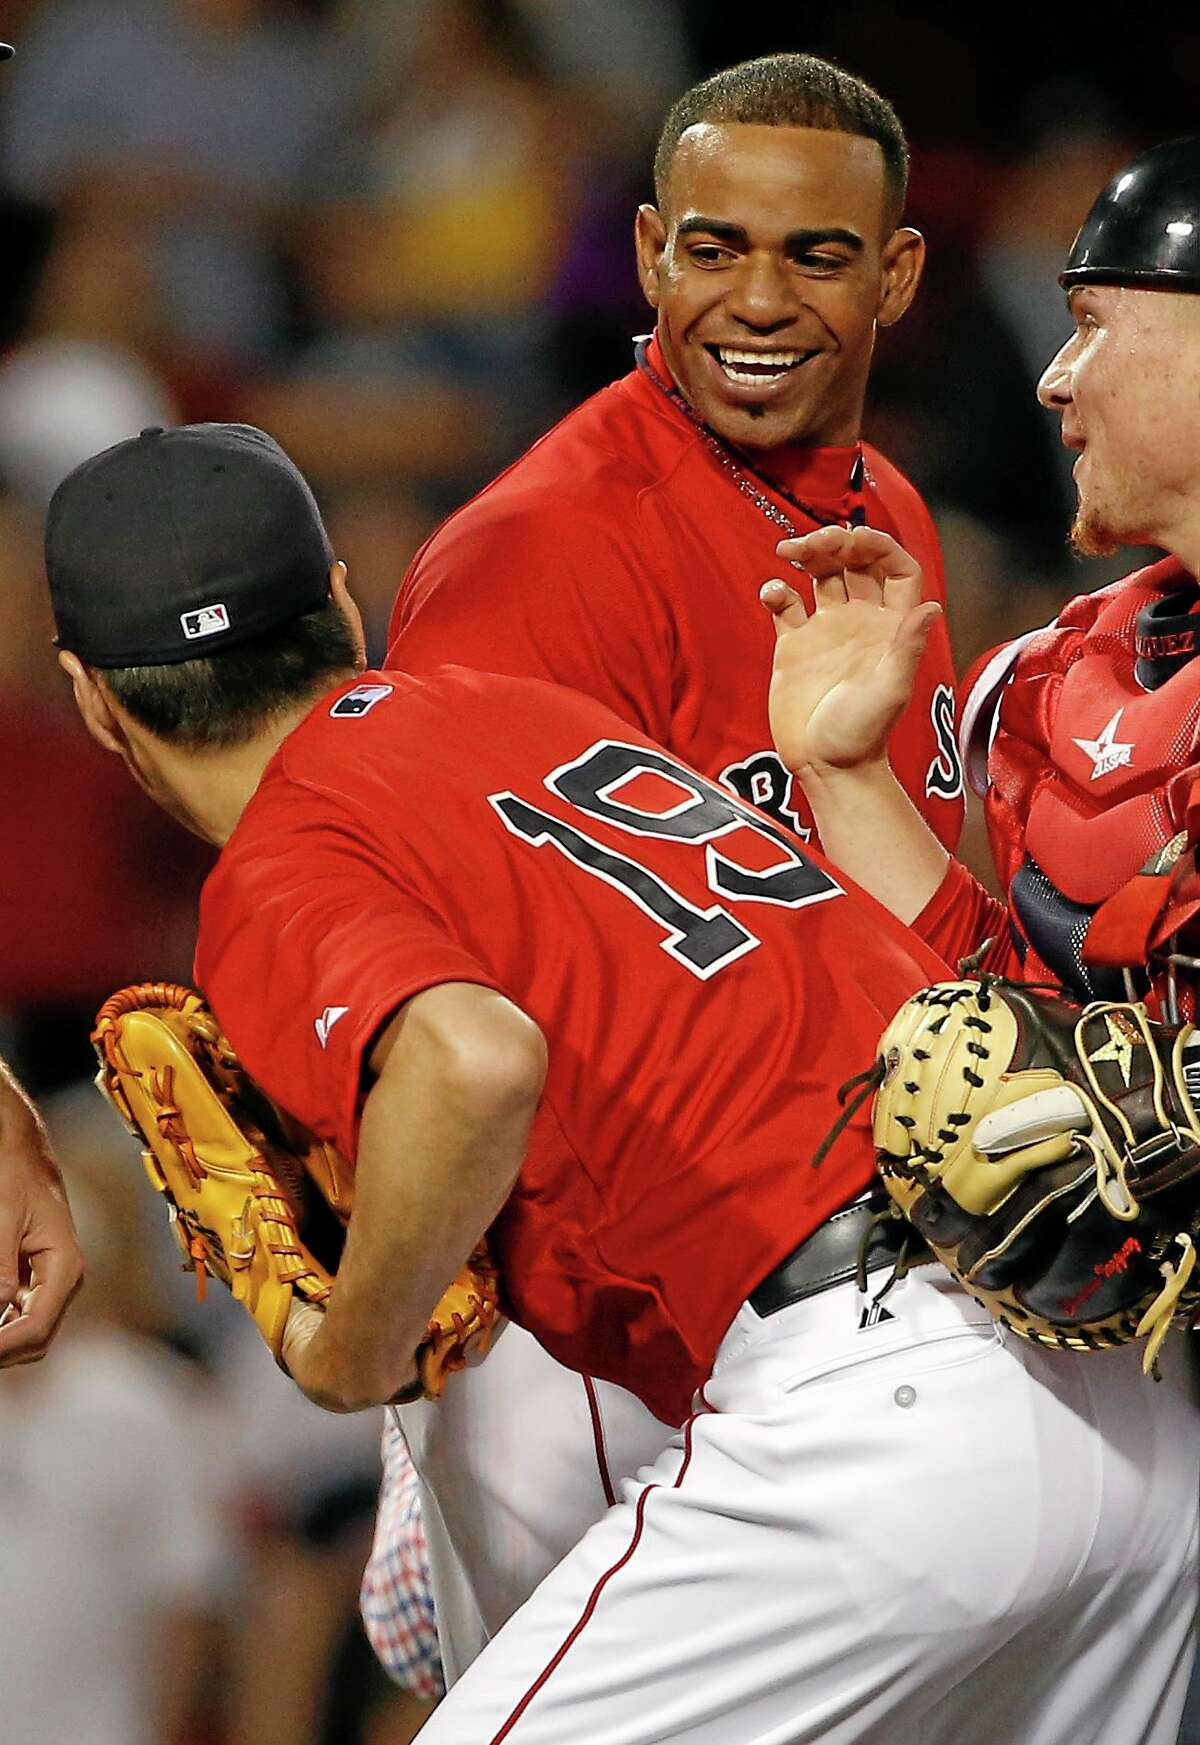 Winslow Townson - Assocated Press Boston Red Sox's Yoenis Cespedes smiles at relief pitcher Koji Uehara, of Japan, after the Red Sox defeated the New York Yankees 4-3 at Fenway Park.